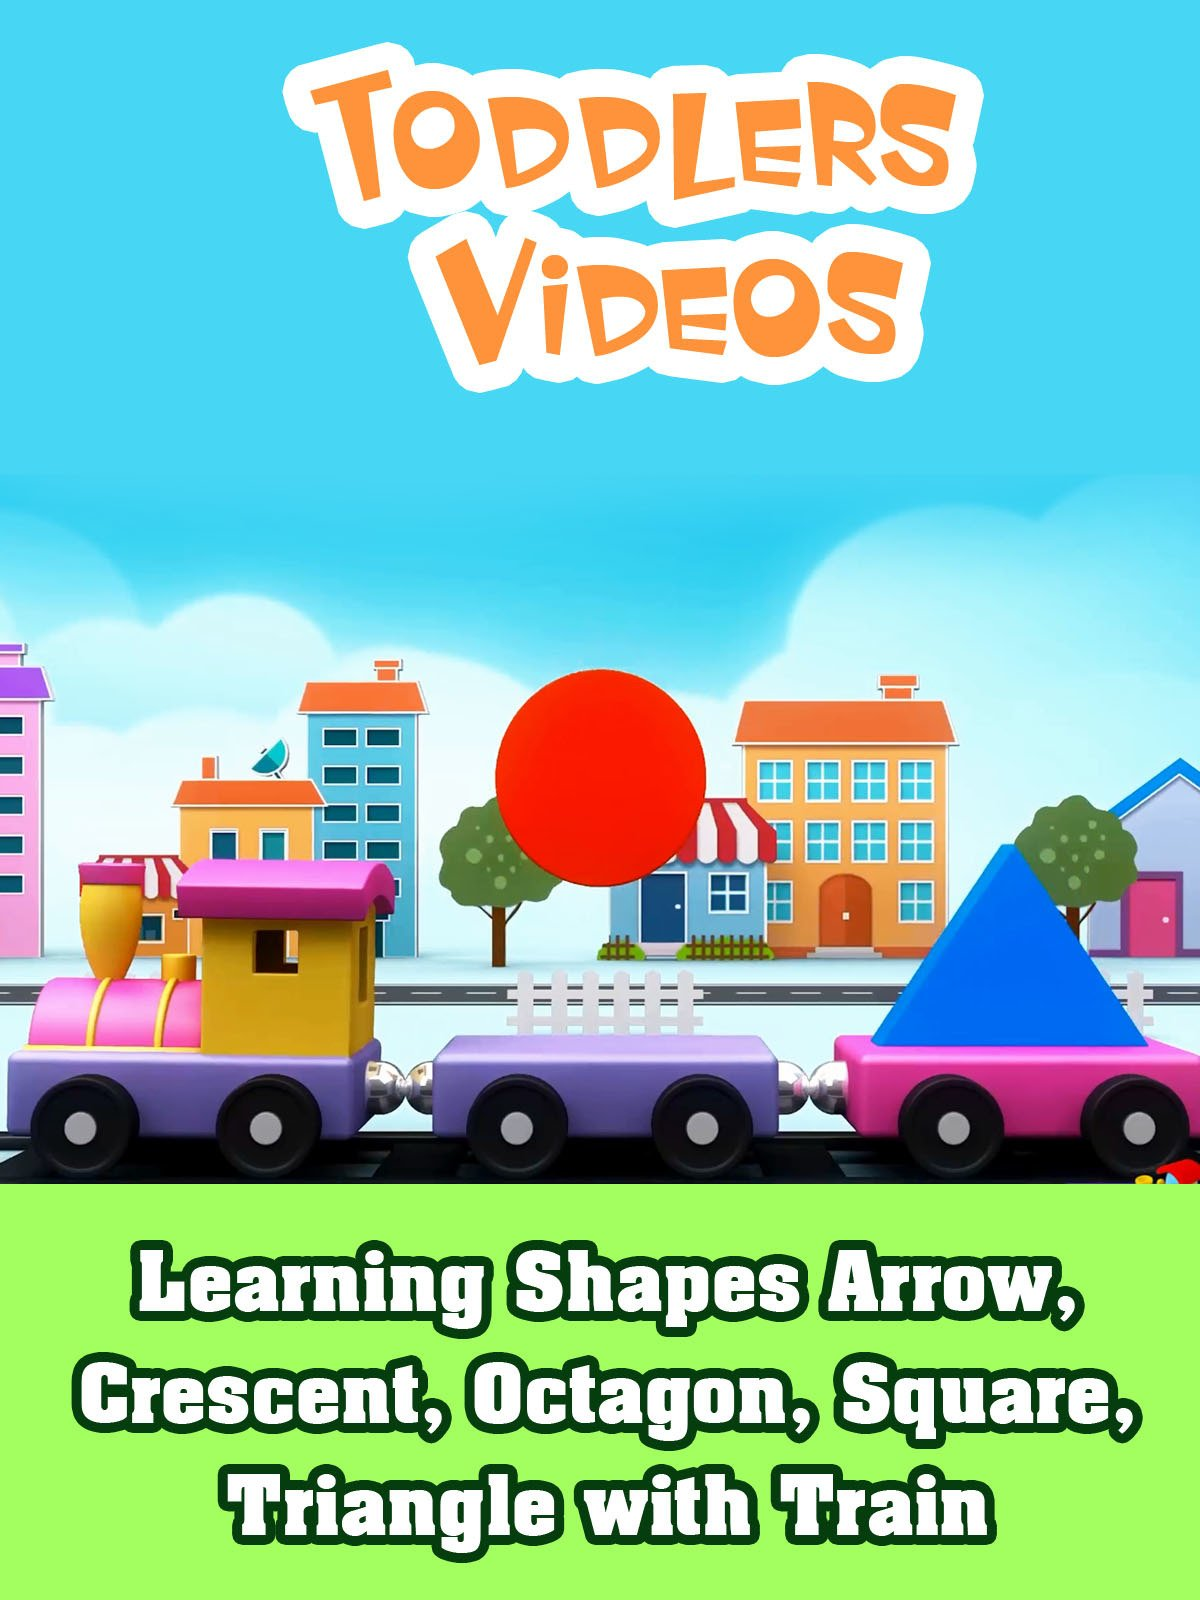 Learning Shapes Arrow, Crescent, Octagon, Square, Triangle with Train